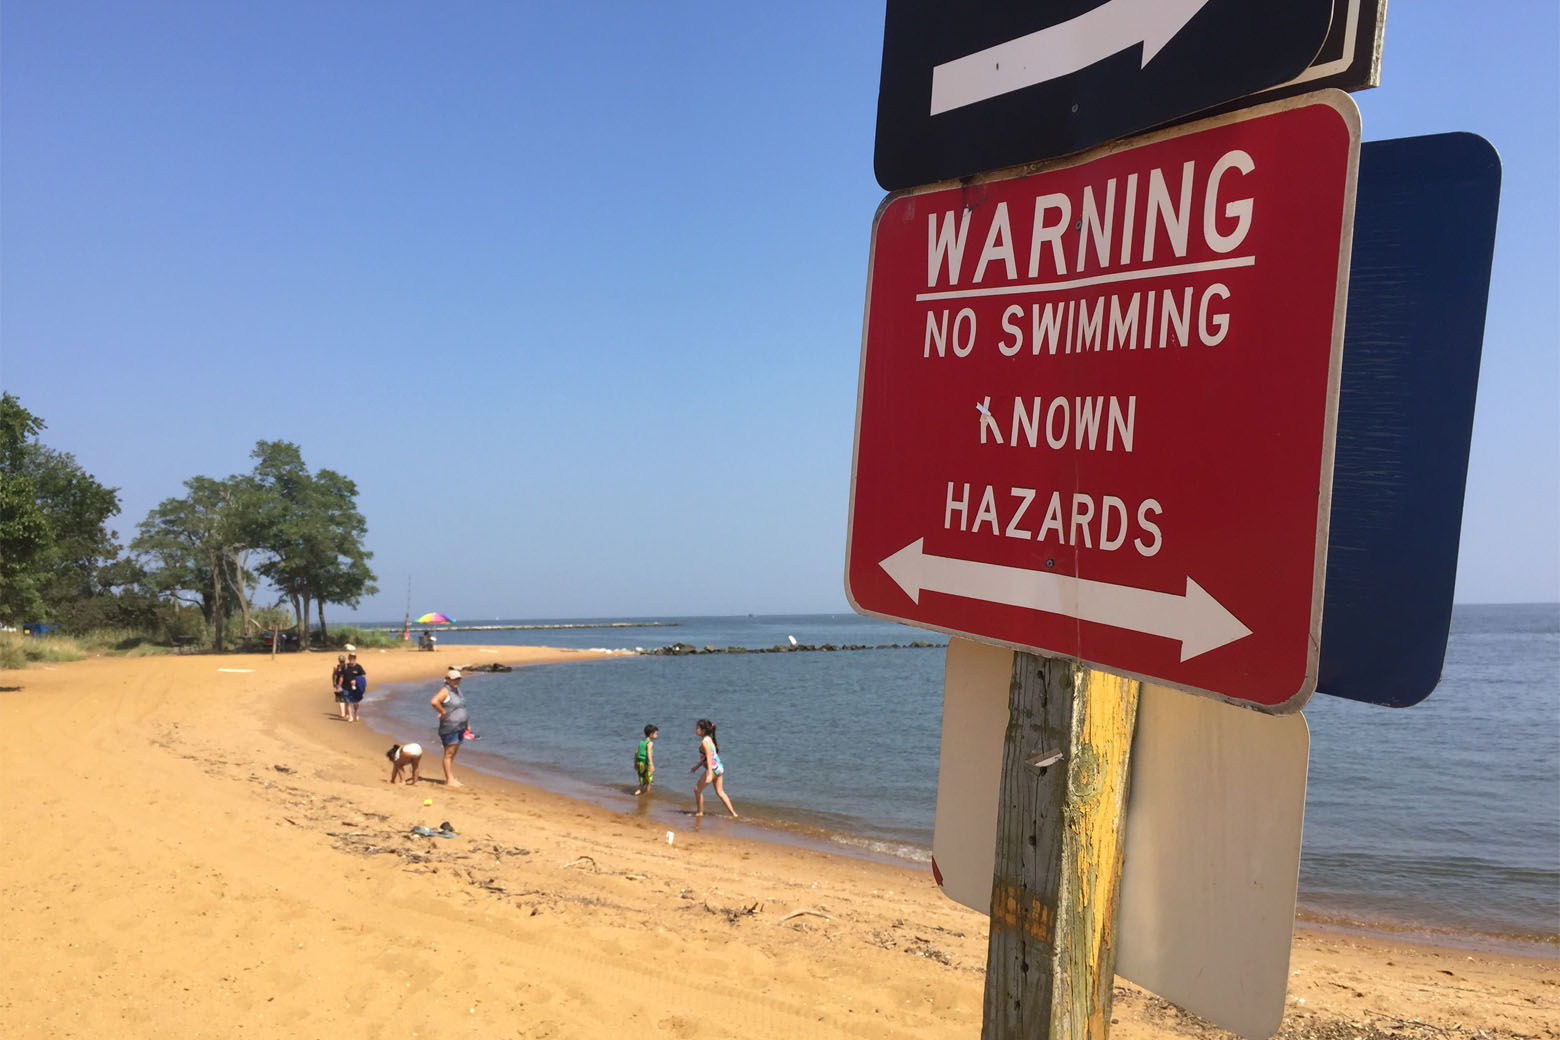 The 12-year-old Baltimore girl whose body was pulled from the Chesapeake Bay Tuesday was in an area of Sandy Point Park restricted to swimming when she was overcome by a strong current, Maryland Natural Resources Police say. (WTOP/Kristi King)